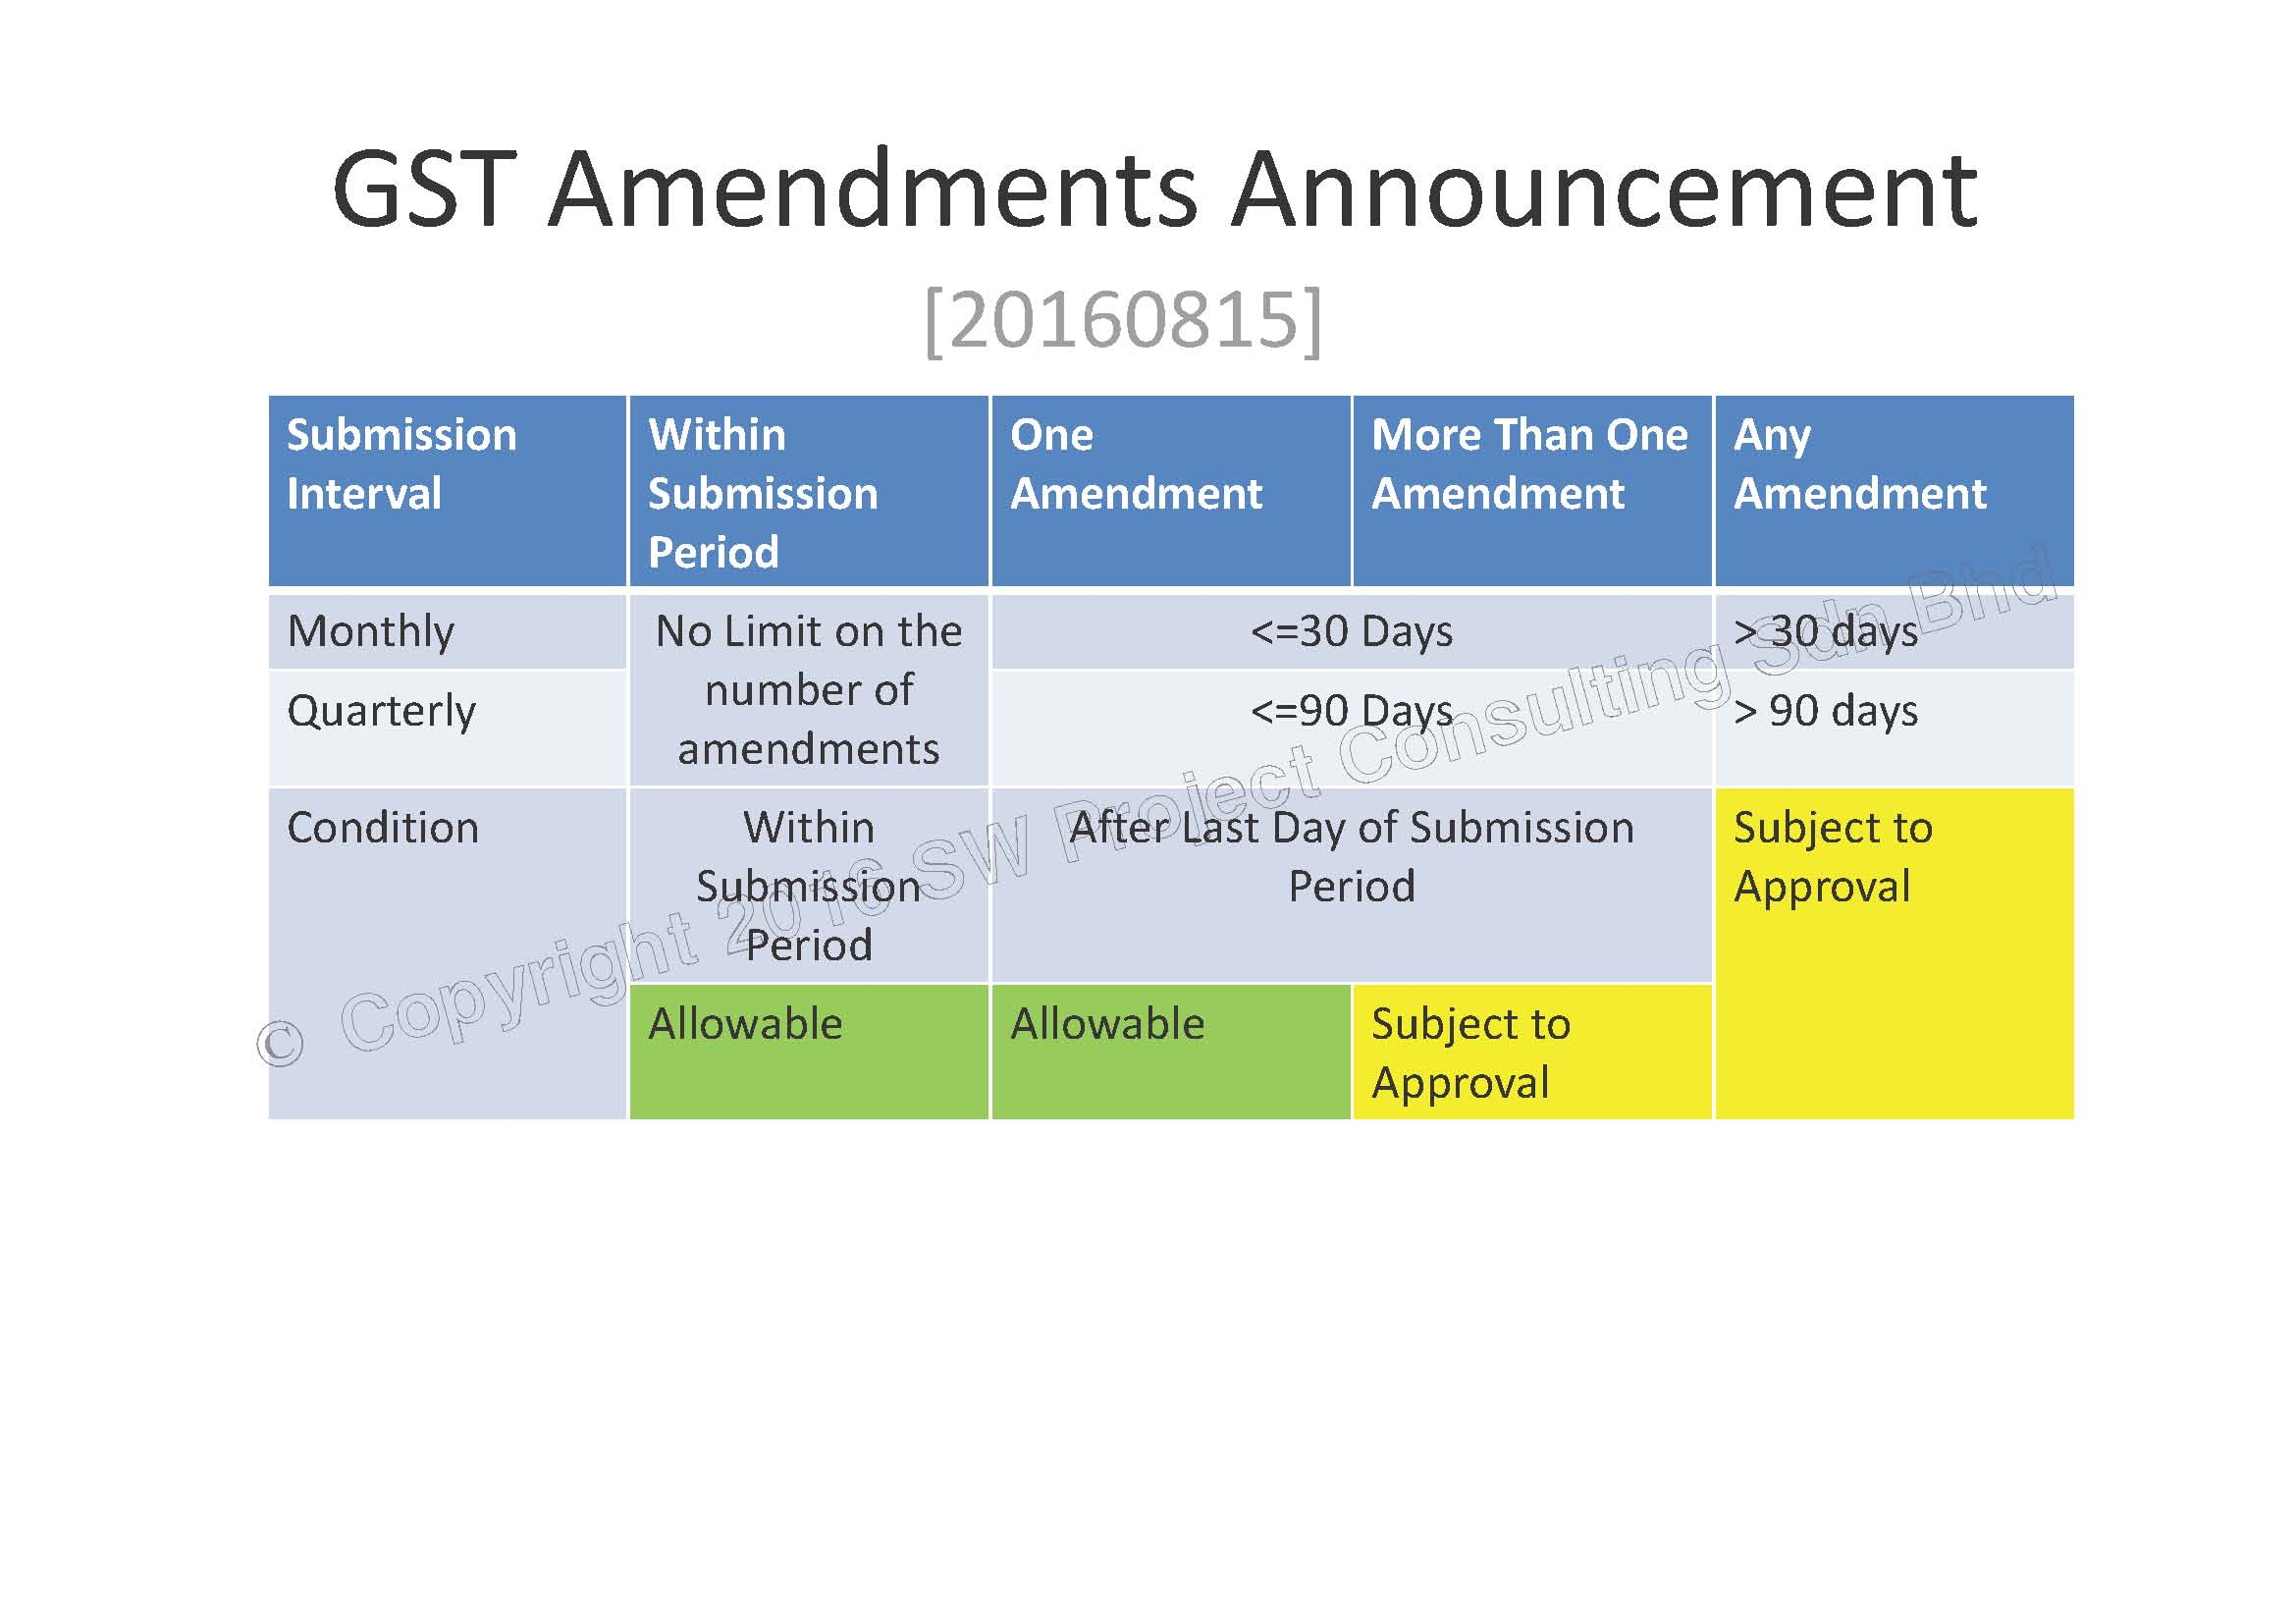 GST Amendments Announcement